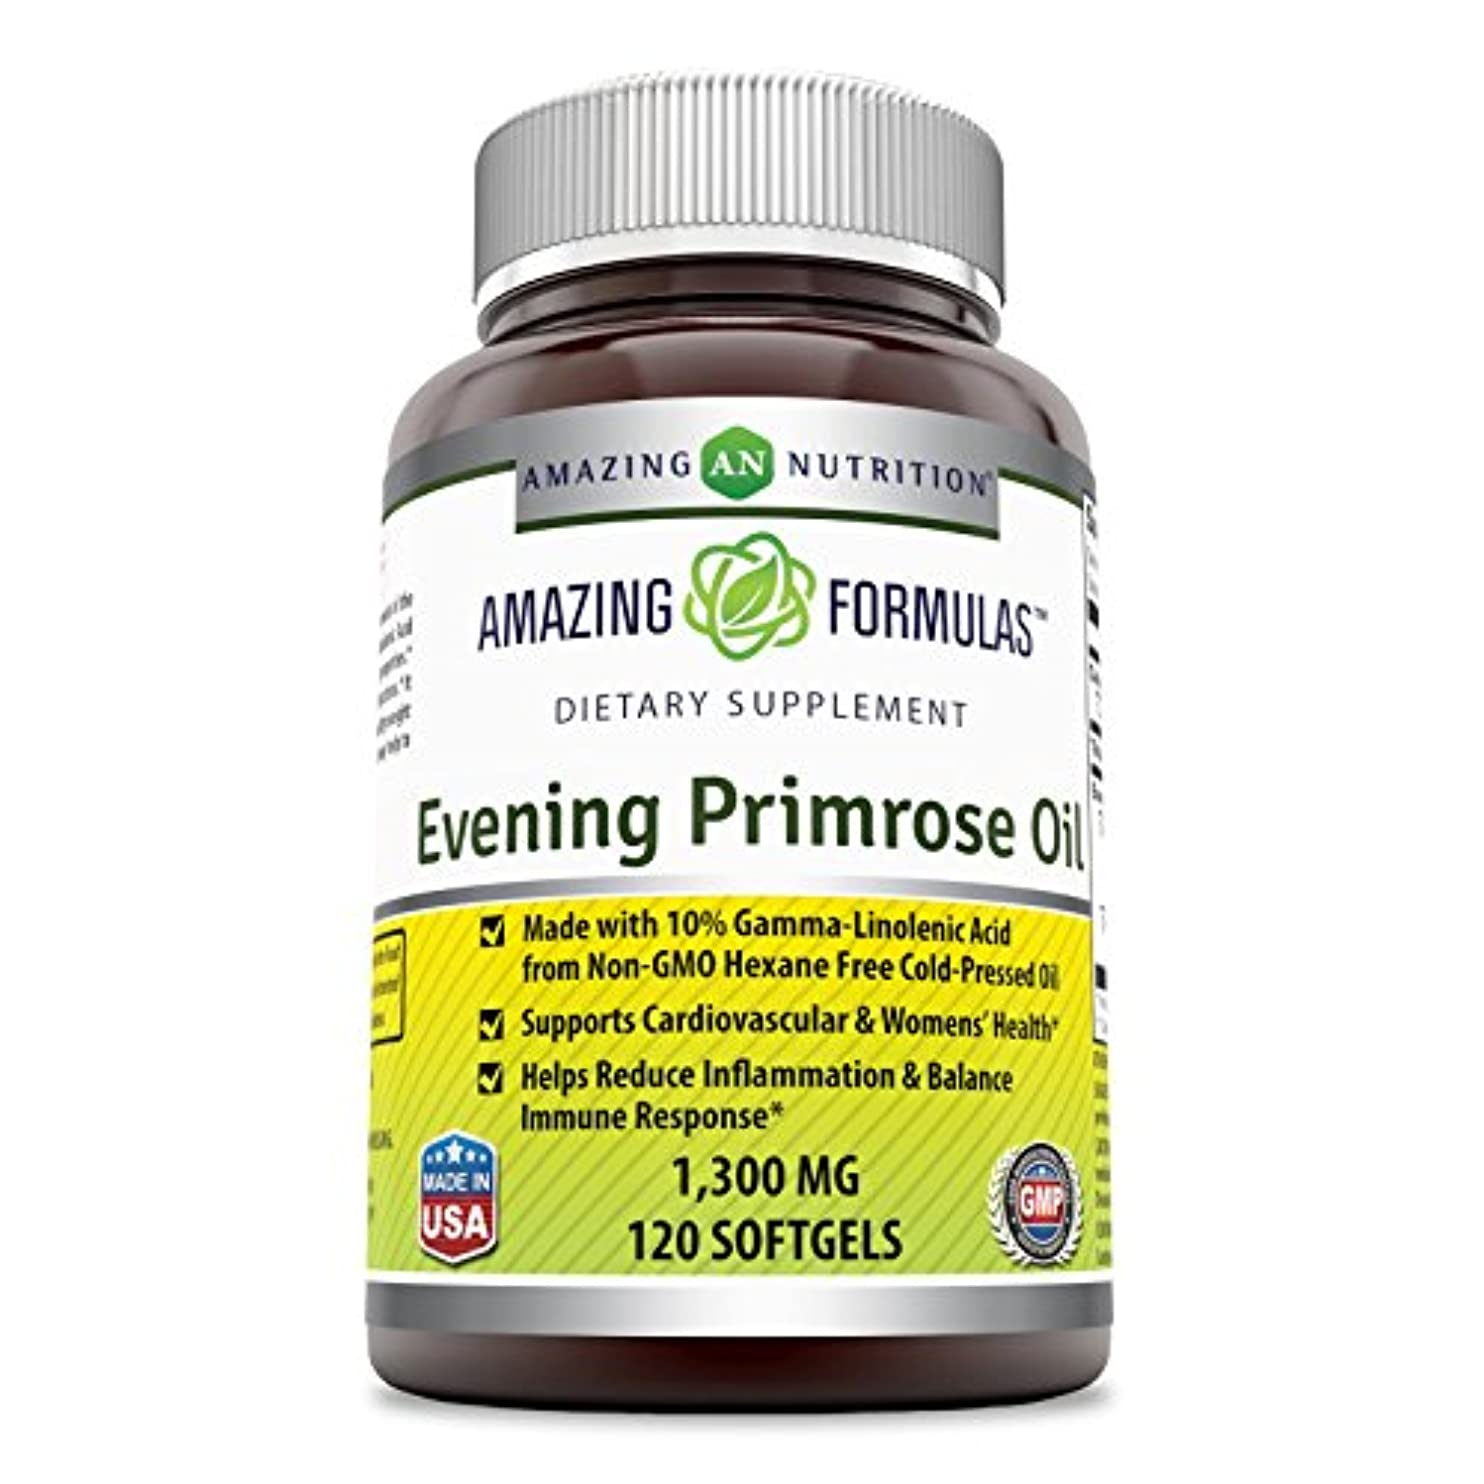 Amazing Formulas Evening Primrose Oil 1300 Mg 120 Softgels - High Potency- Made with 10% Gamma Linoleic from Non-GMO...